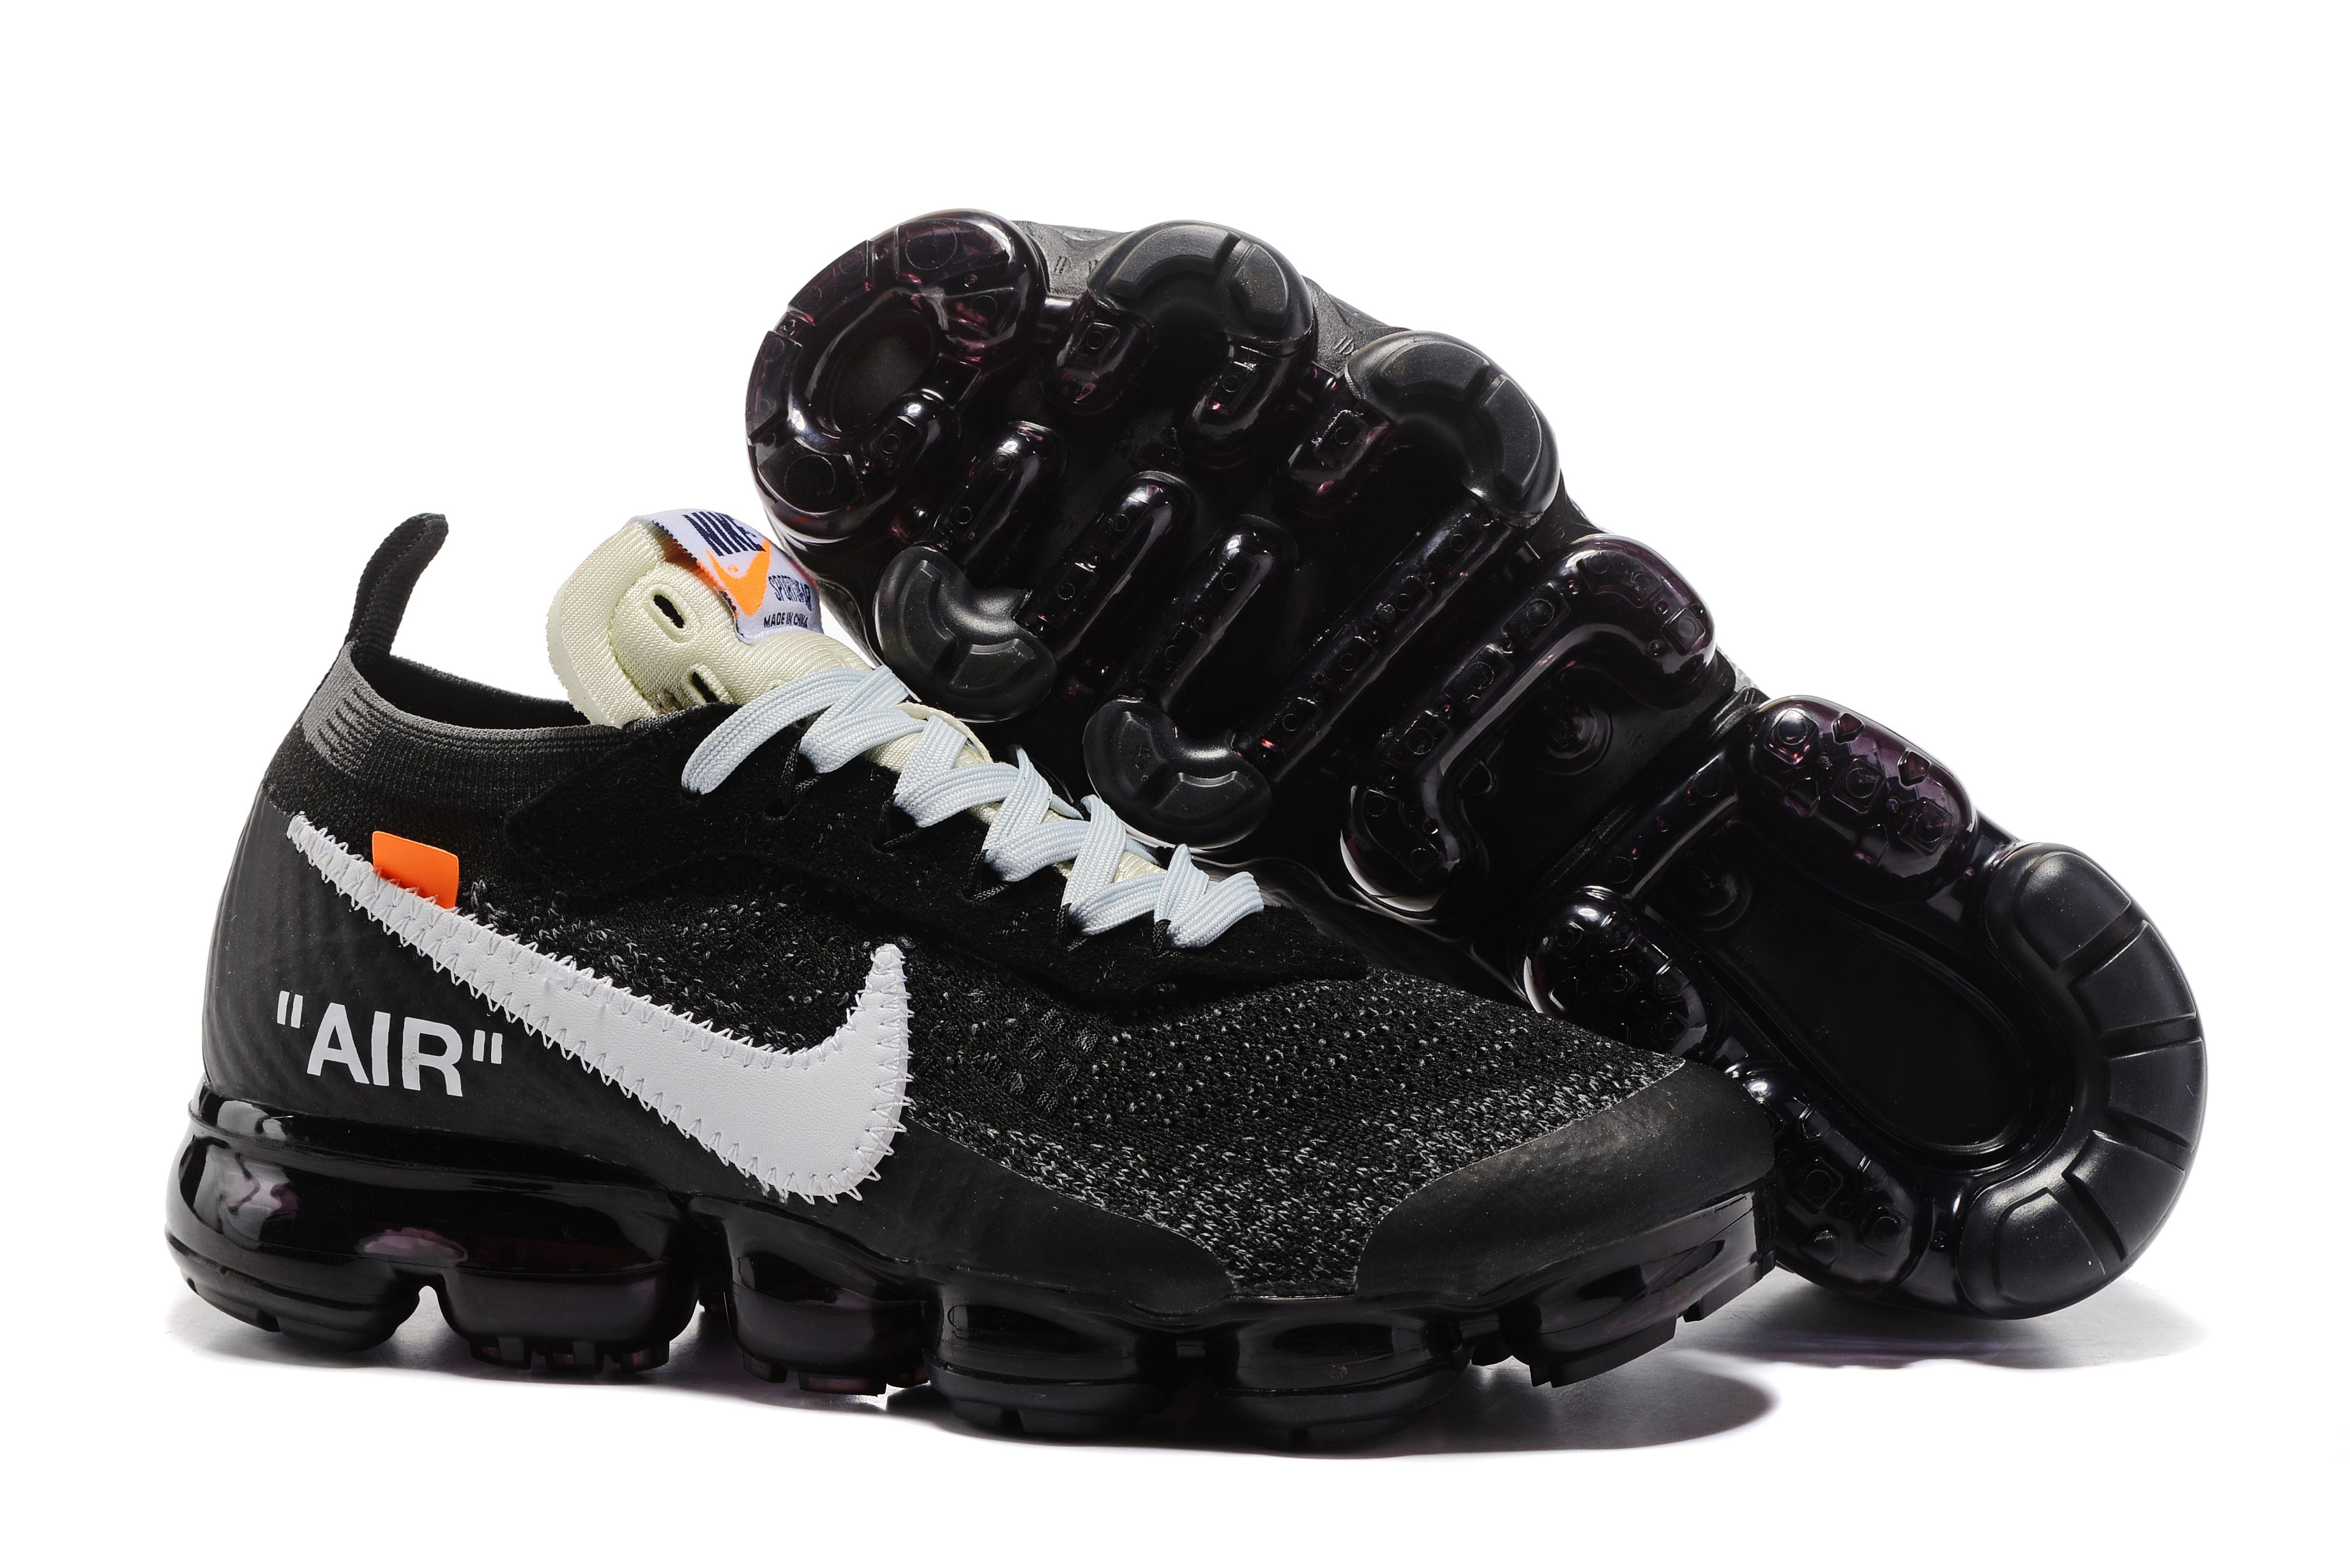 OFF-White X Nike Air VaporMax 849558 099 Black White Shoe For Sale.jpg